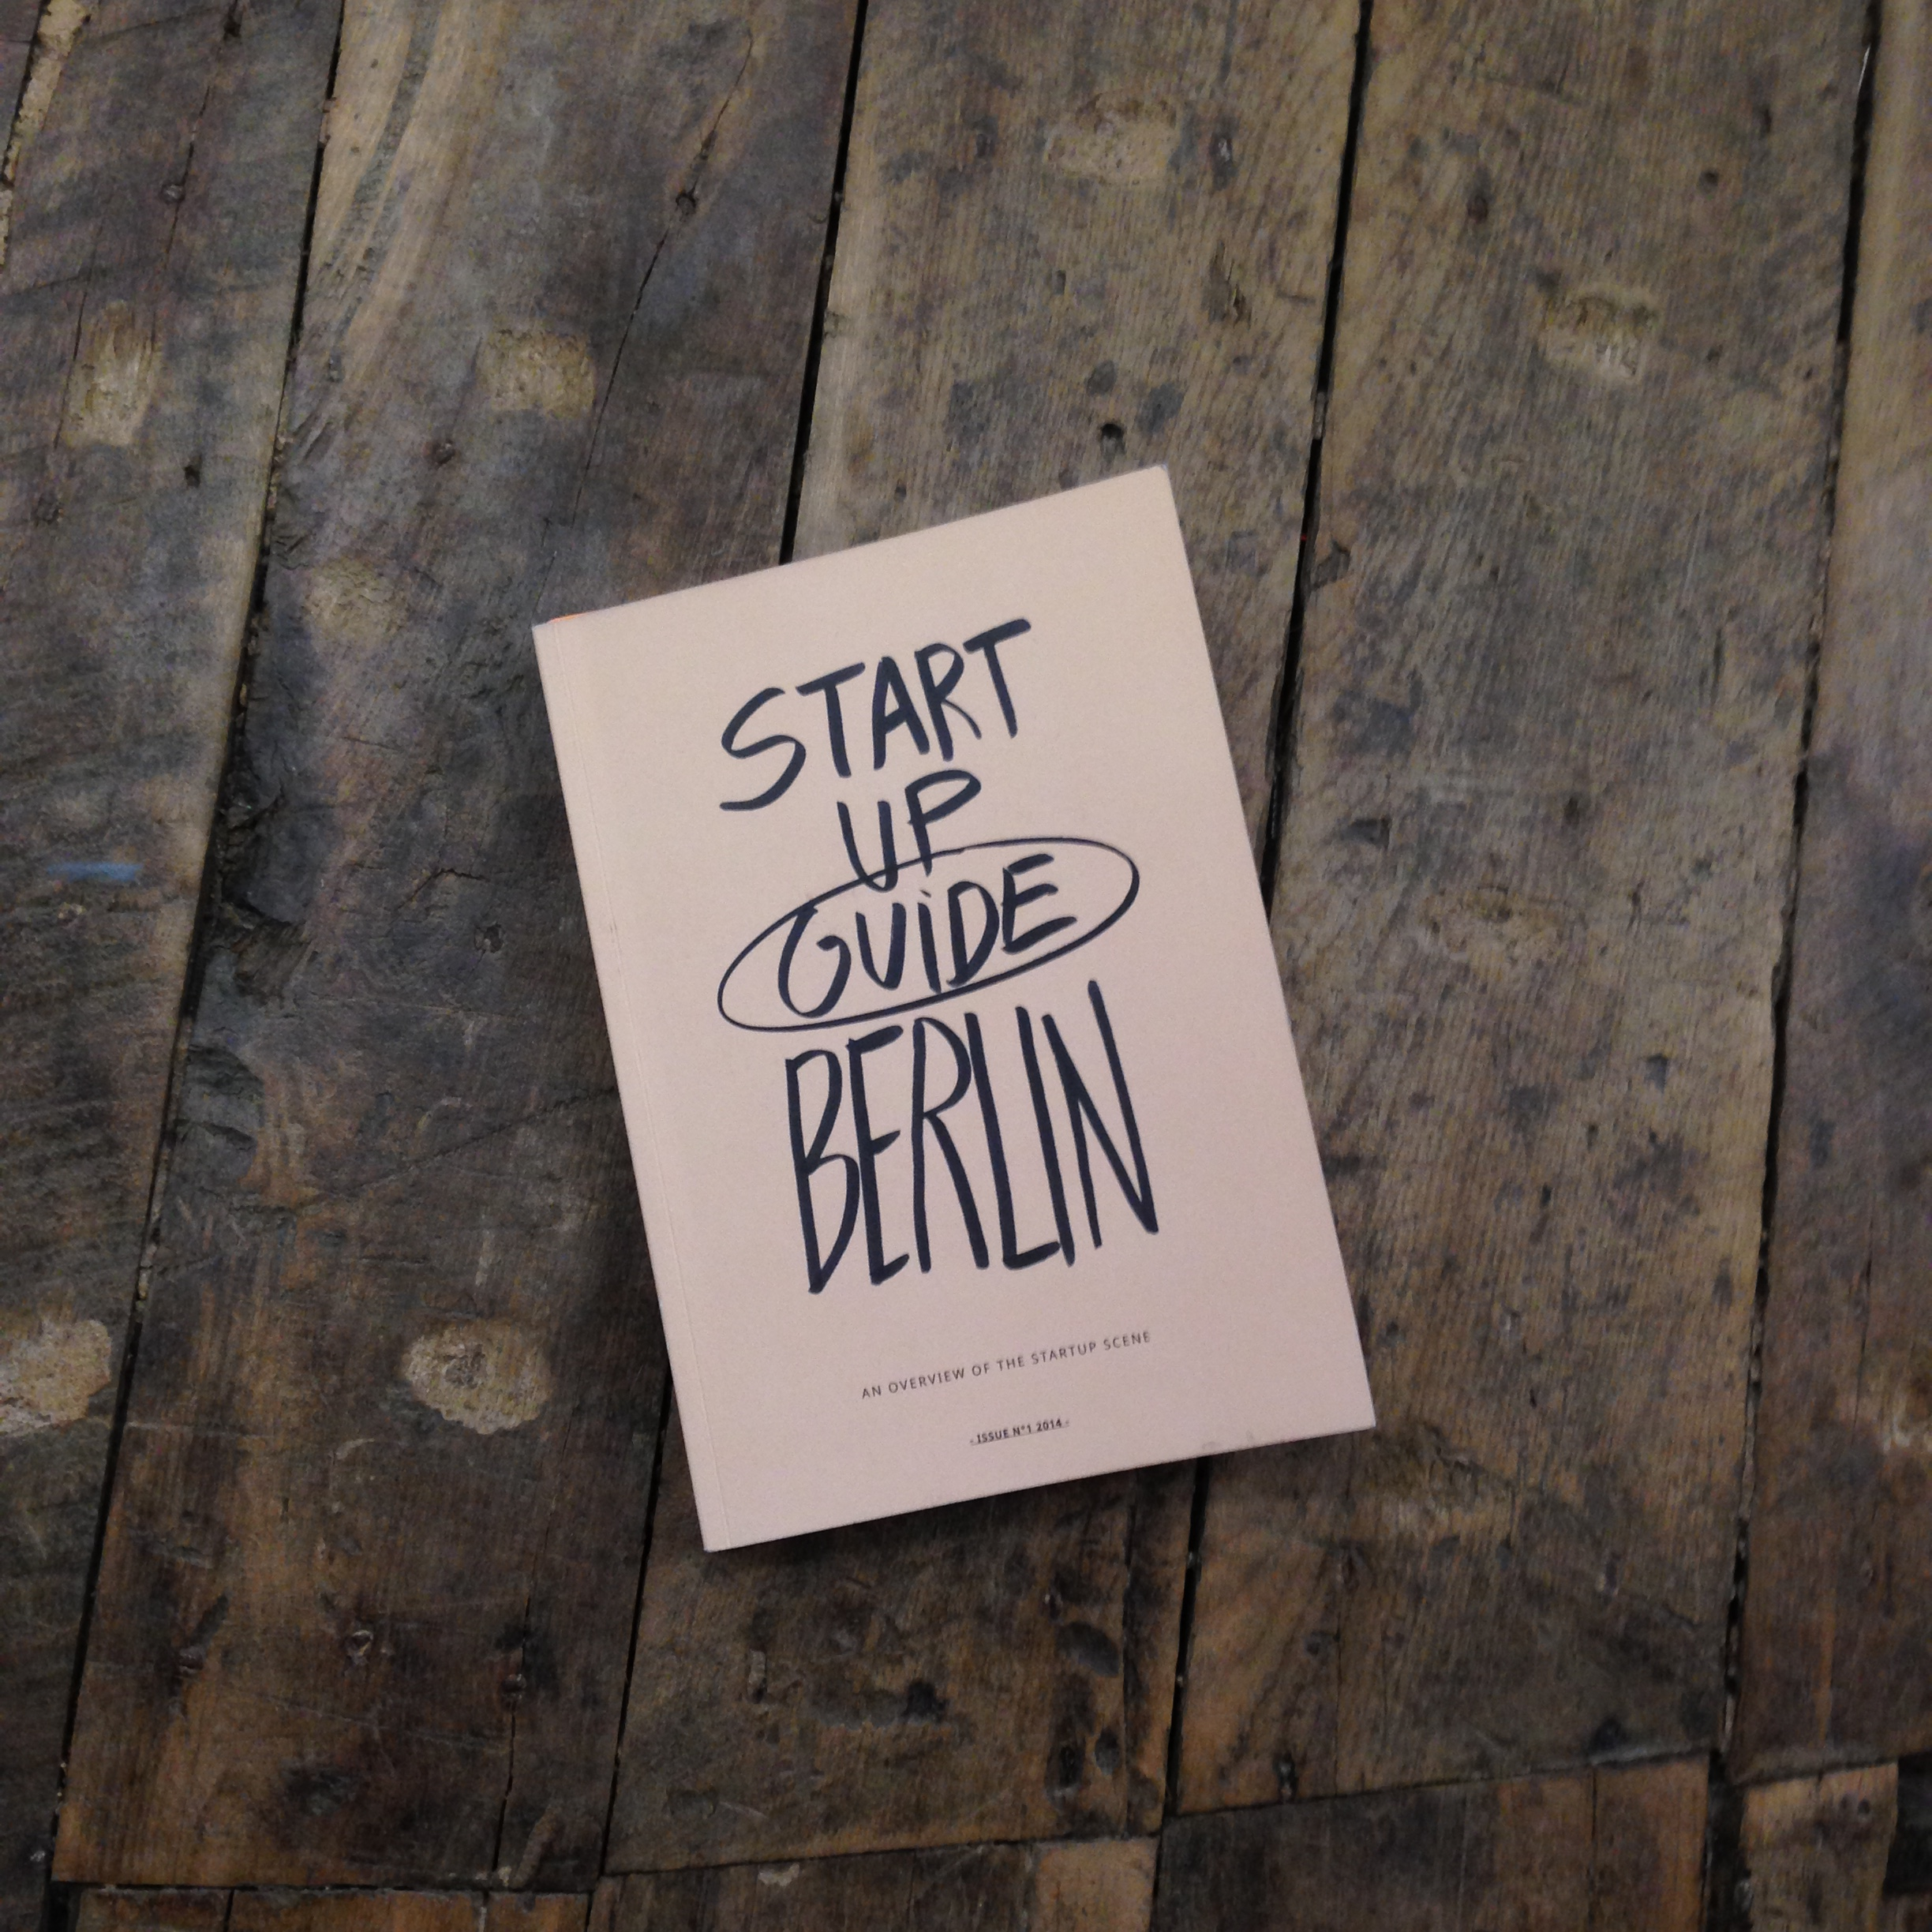 Start_Up_Guide_Berln